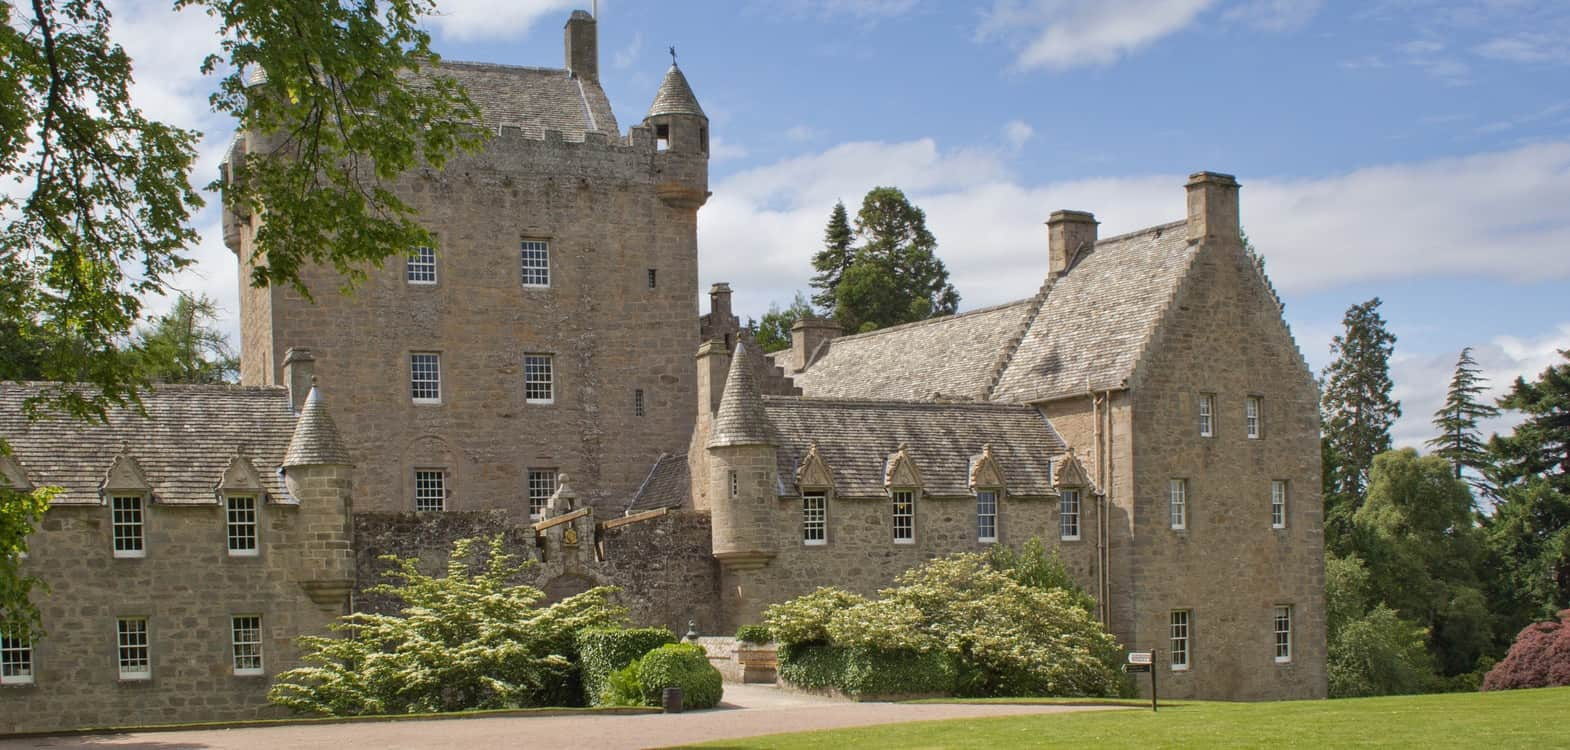 Cawdor Castle in the Highlands of Scotland near the town of Nairn